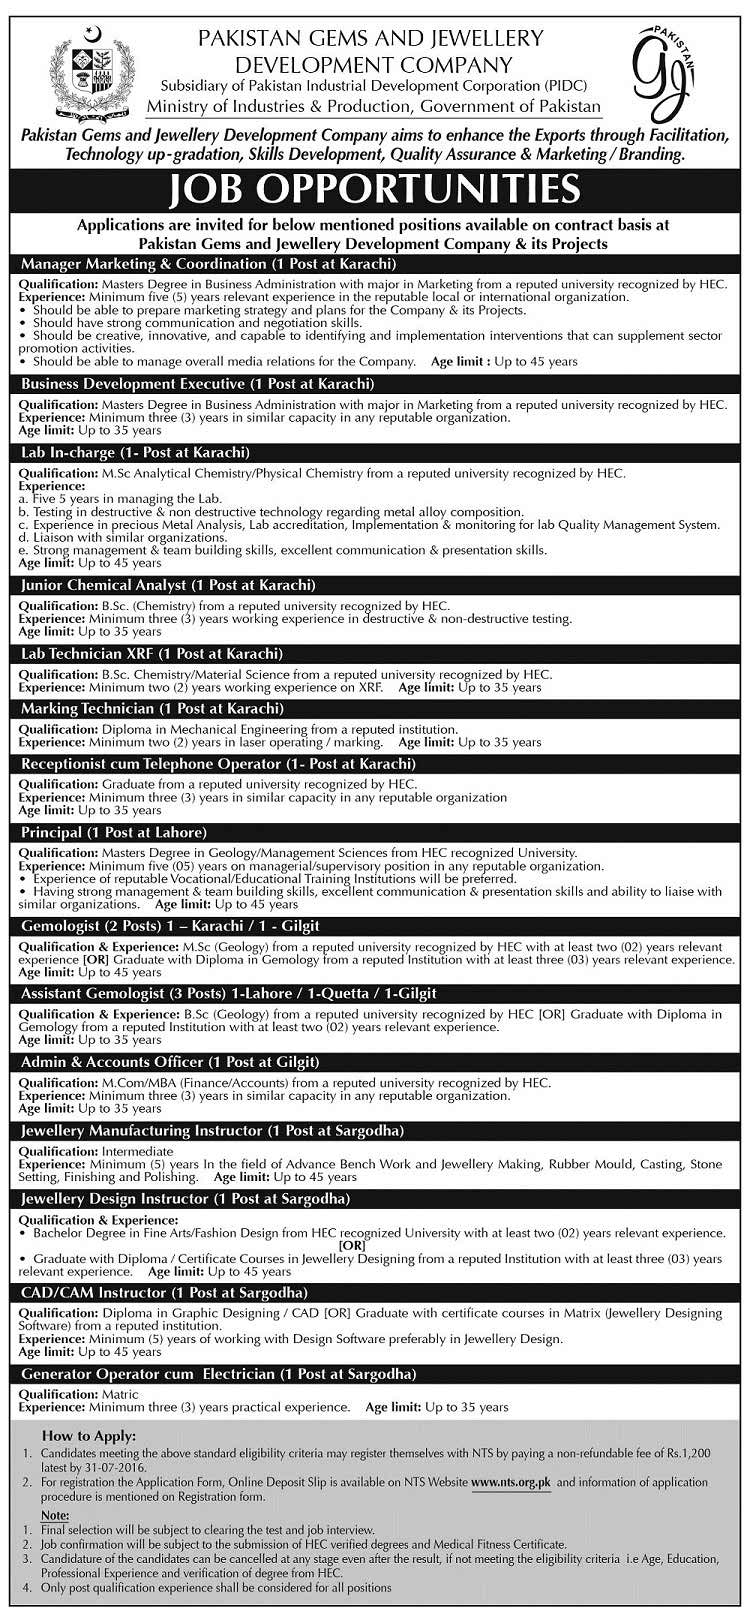 Pakistan Gems and Jewellery Development Company Jobs 2016